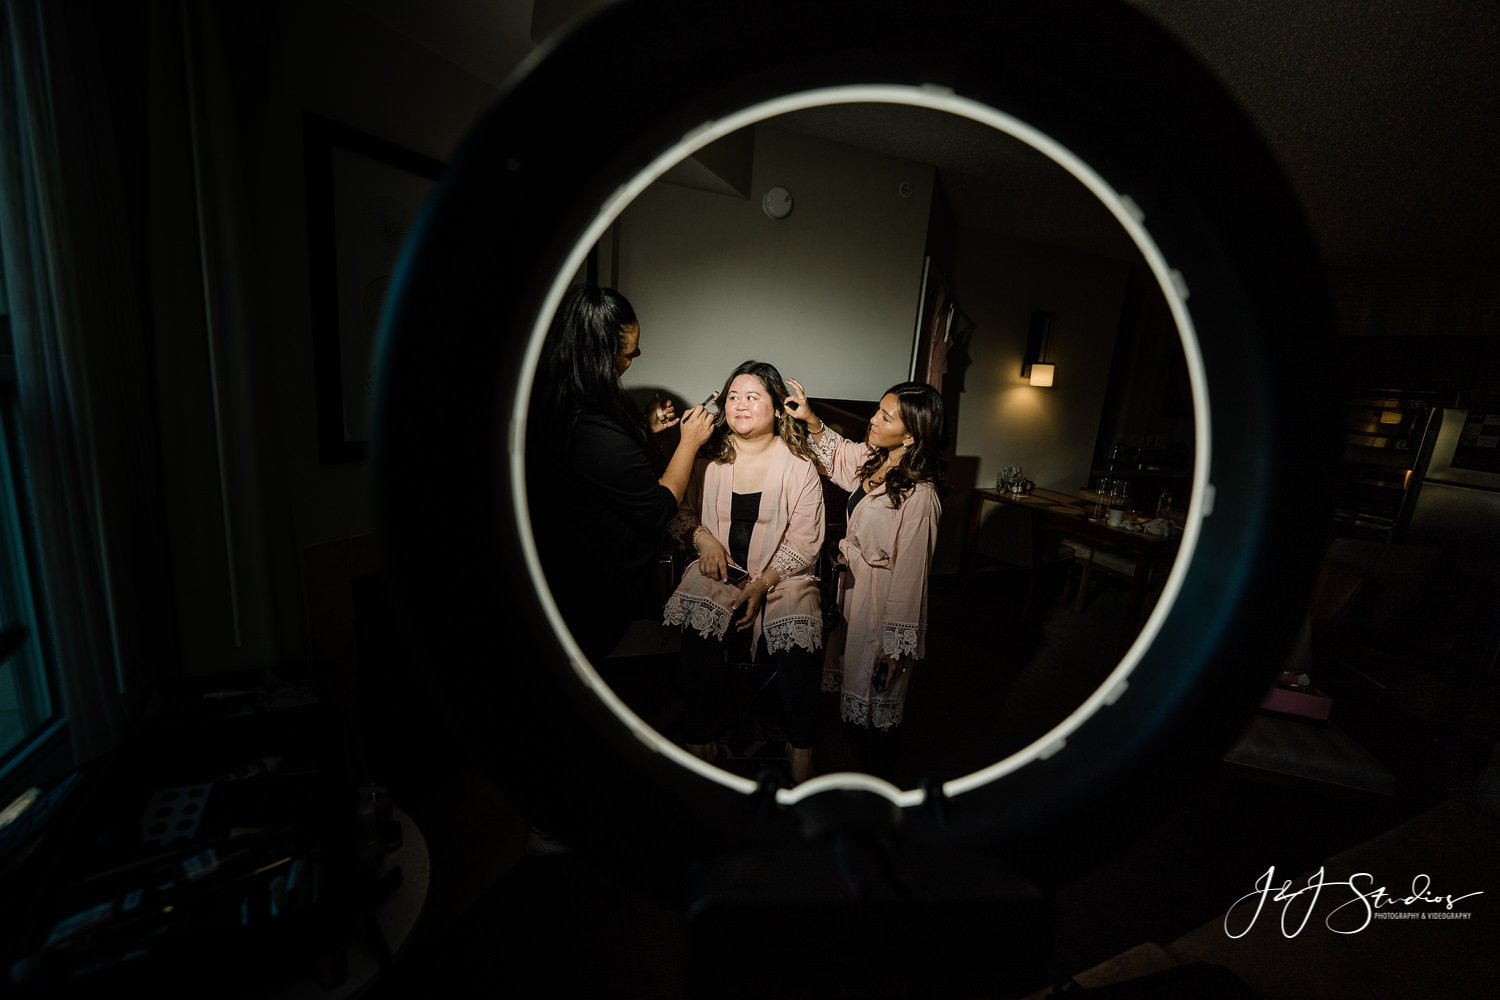 bridesmaid gets make up shot through make up artists ring light